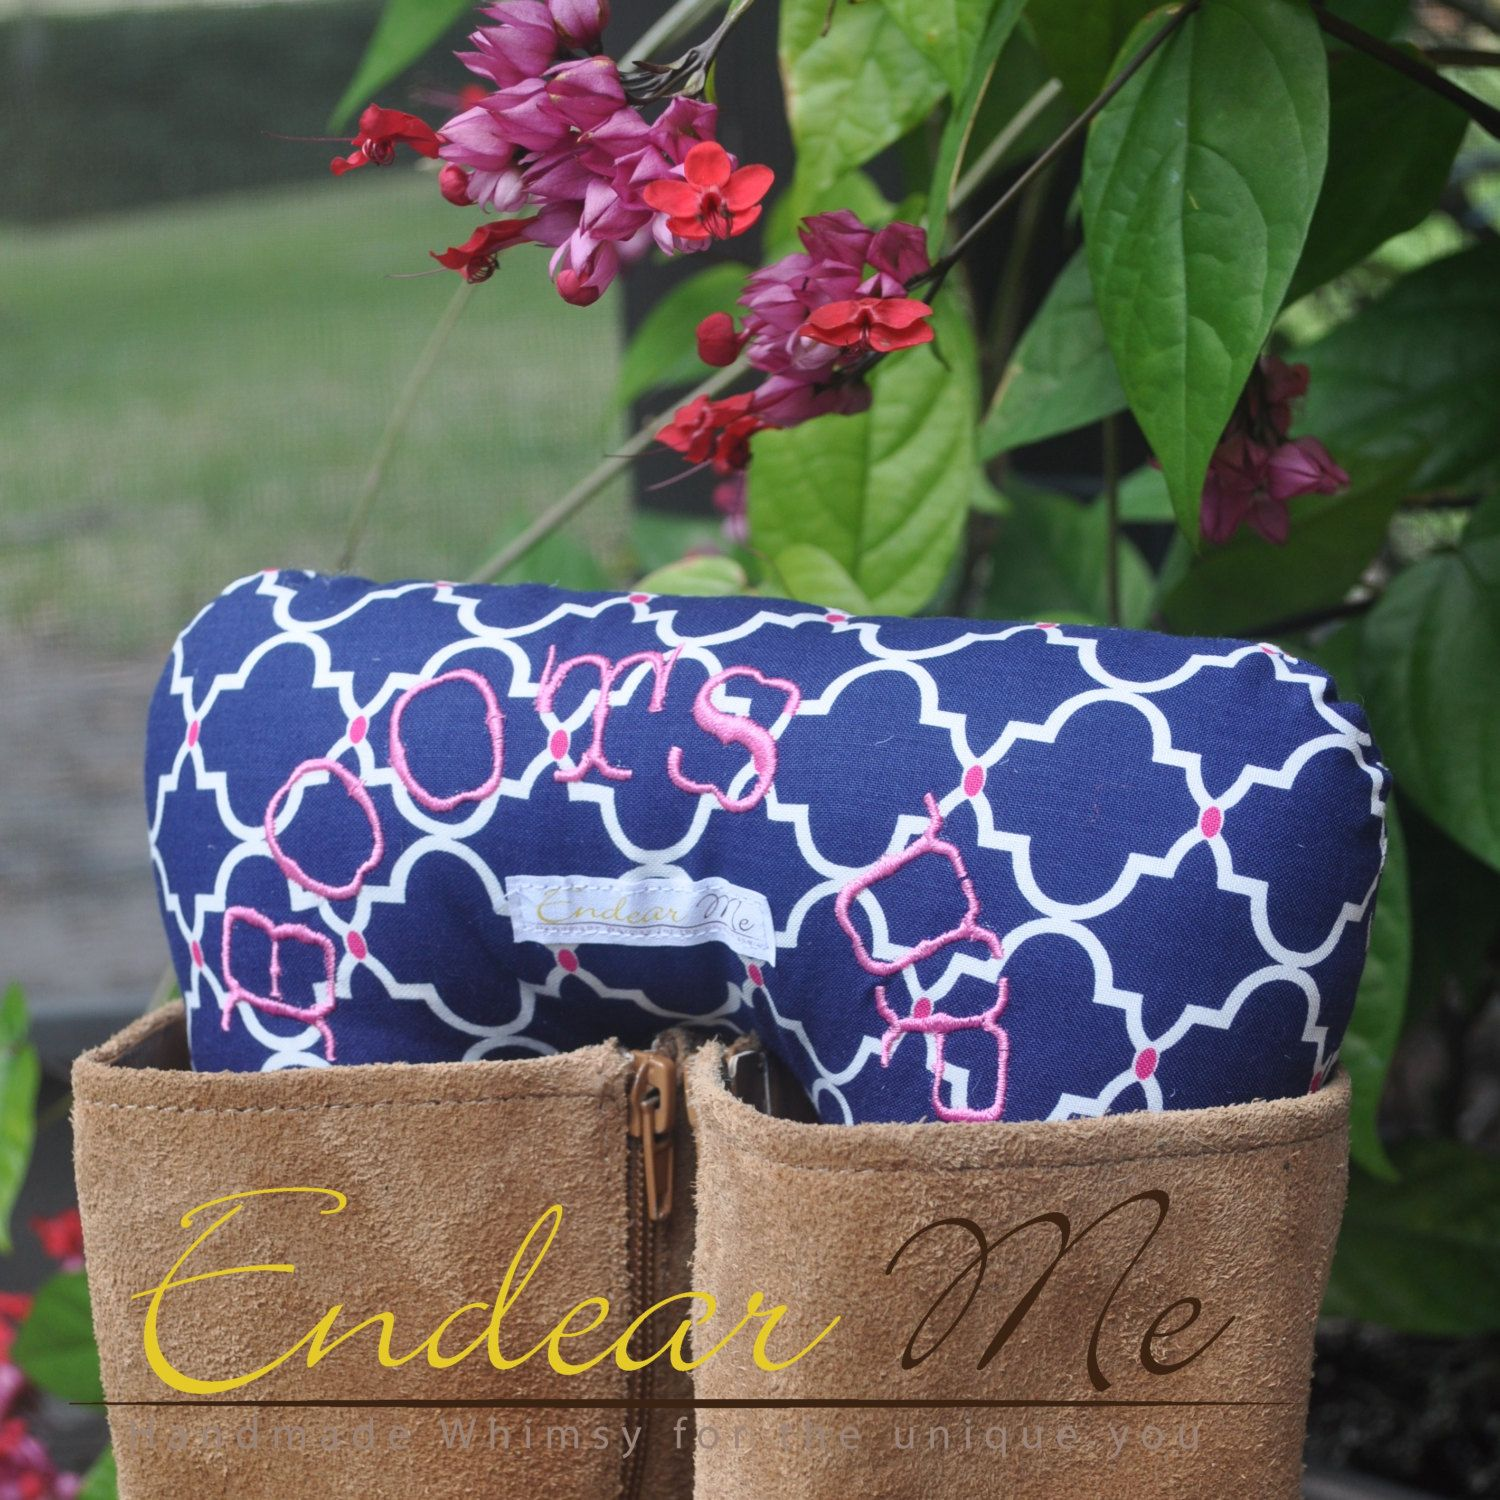 Boots Up by Endear Me Handmade boot stuffer in Blue geometric with pink Cotton fabric - closet organizer; boot trees by EndearMe on Etsy